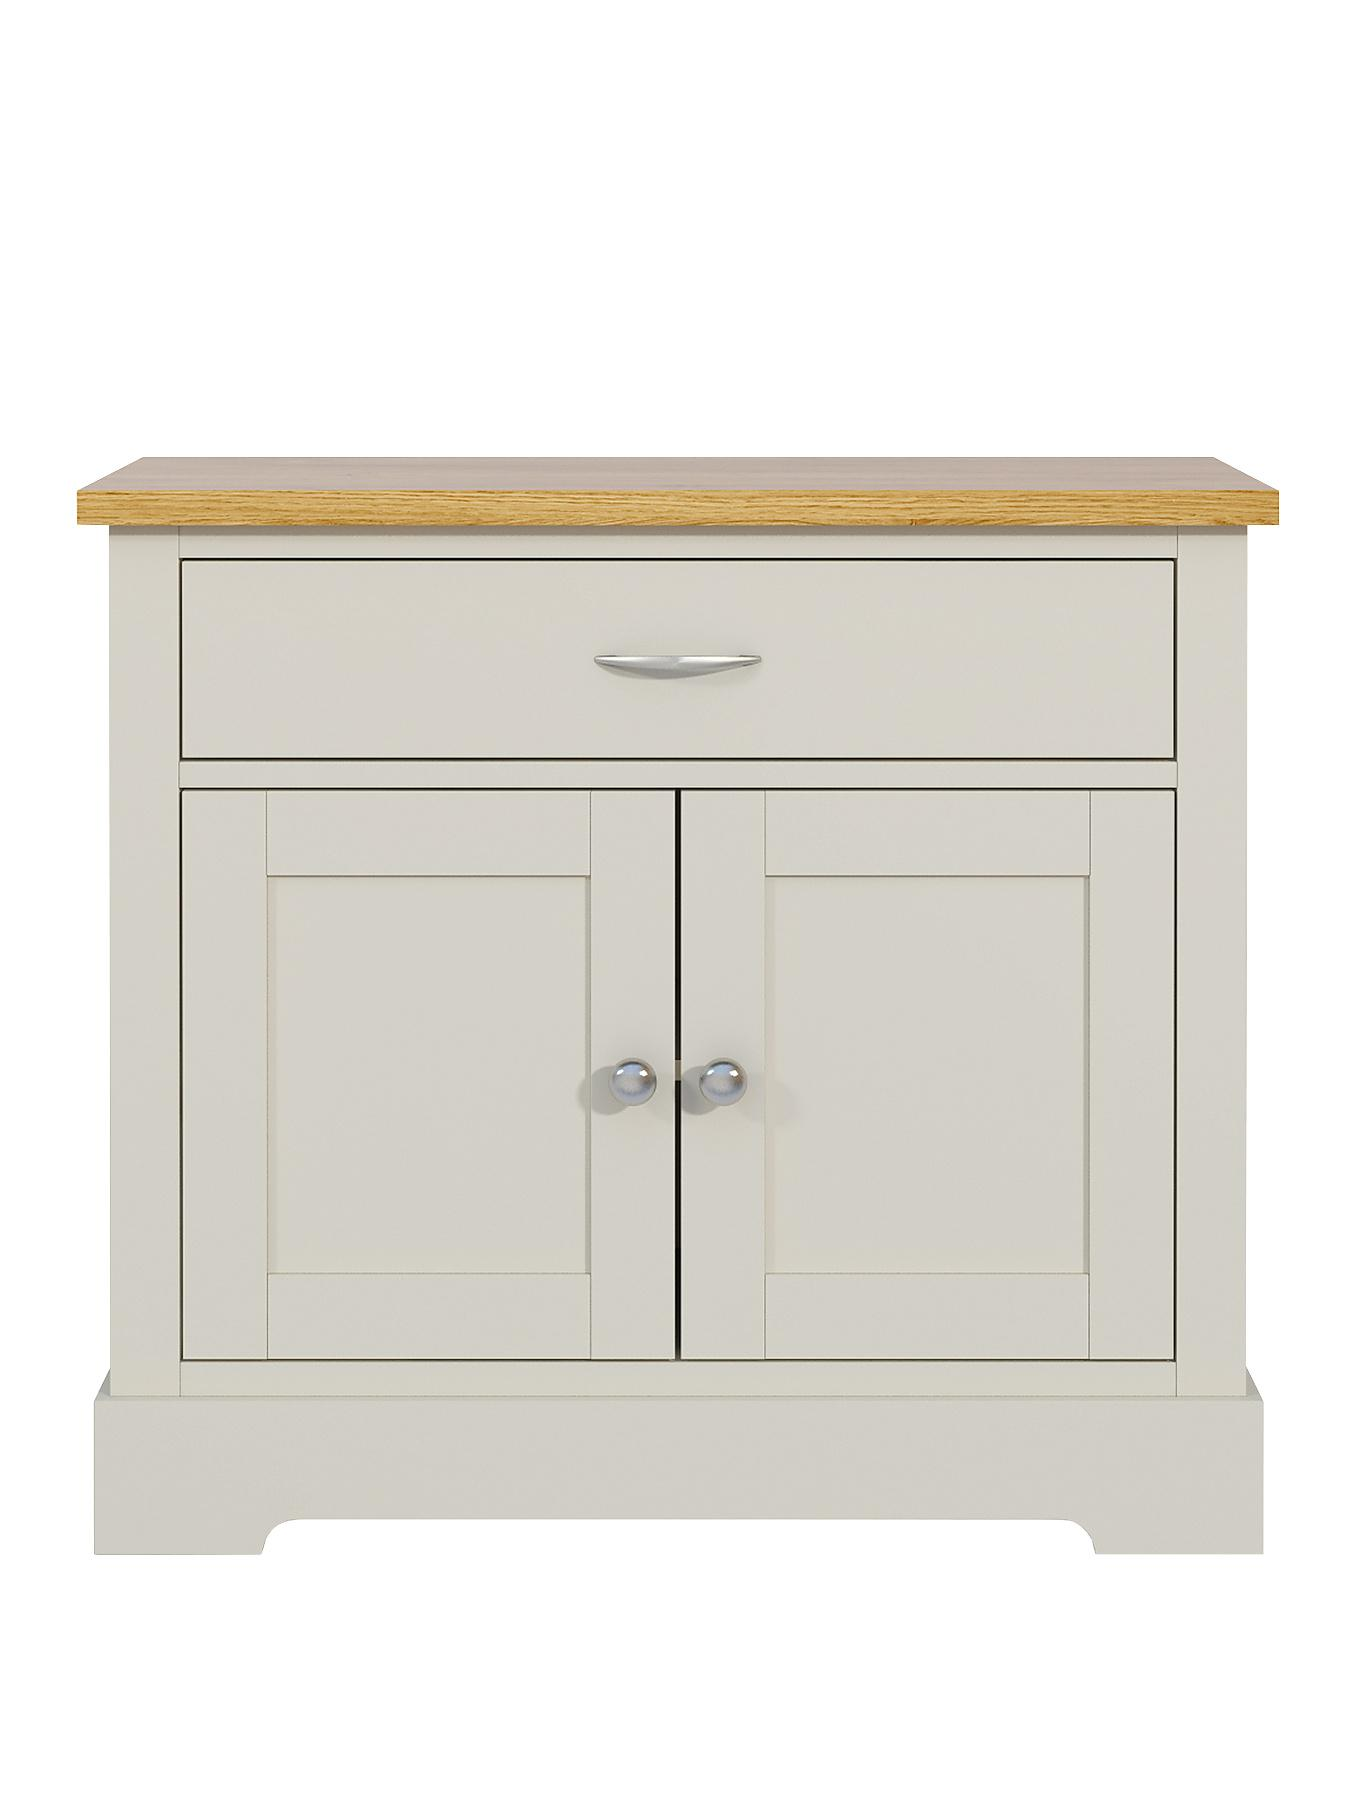 Holsworth 2-Door, 1-Drawer Compact Sideboard - Grey, Grey